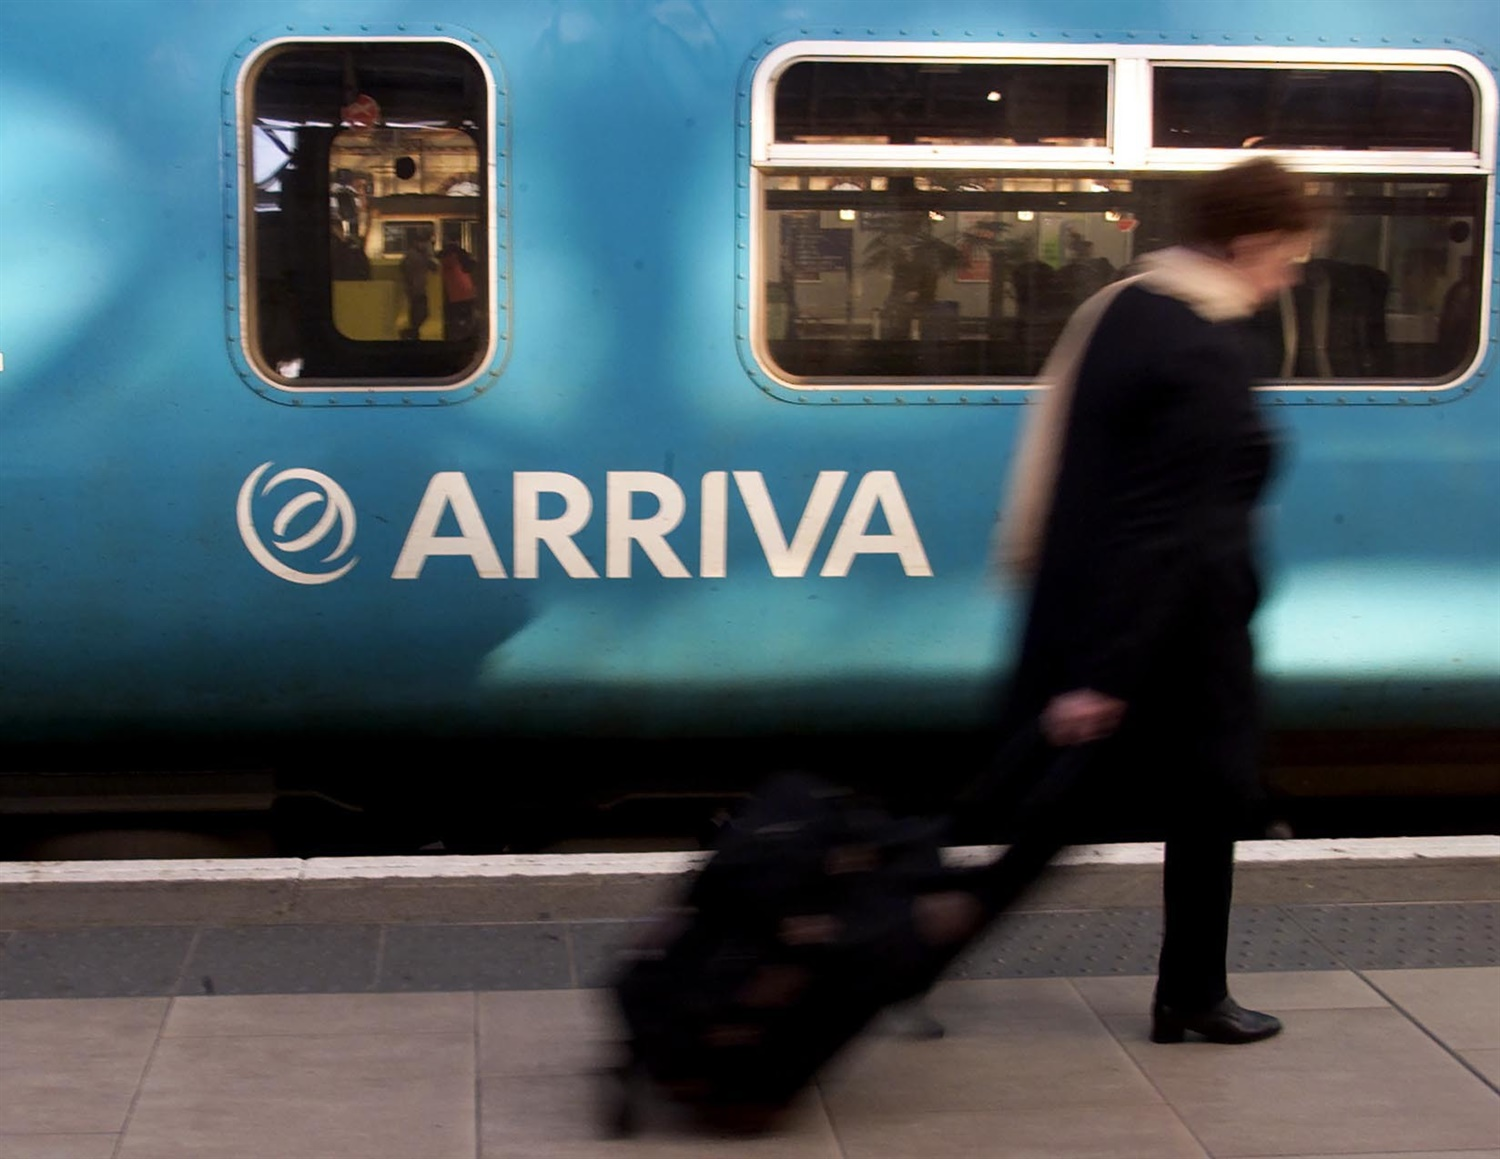 Deutsche Bahn may sell Arriva to plug multi-billion gap in finances